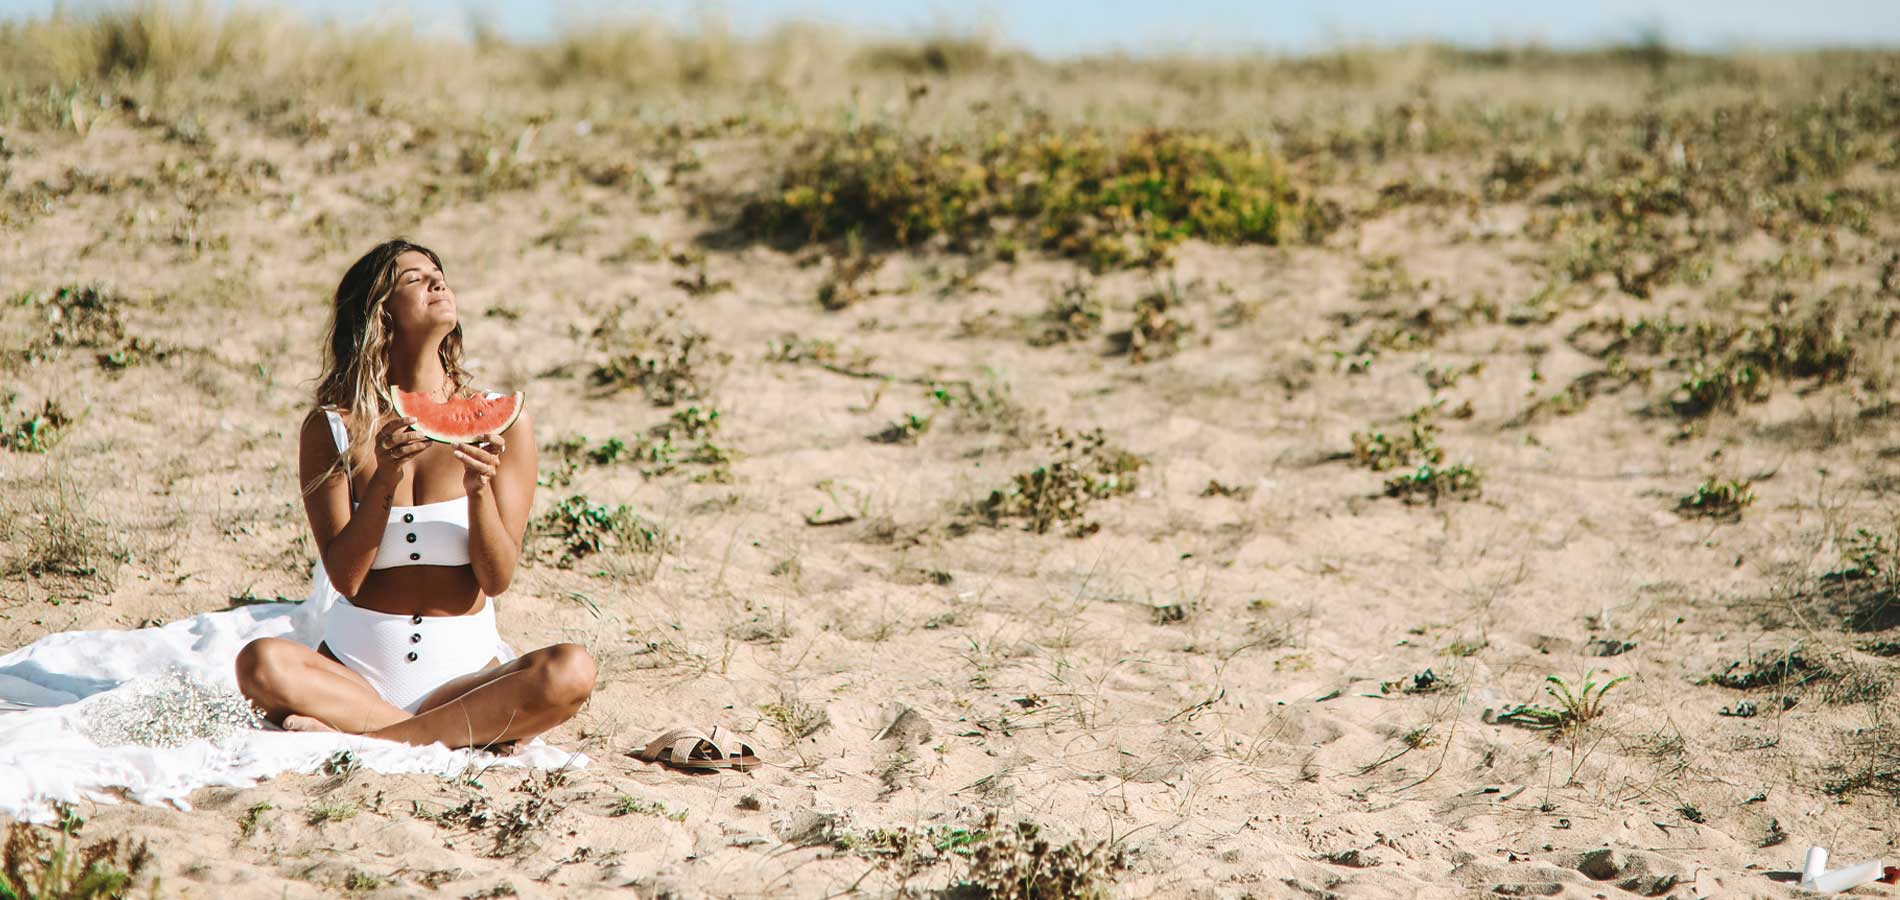 How Should You Prepare Your Skin For The Sun?